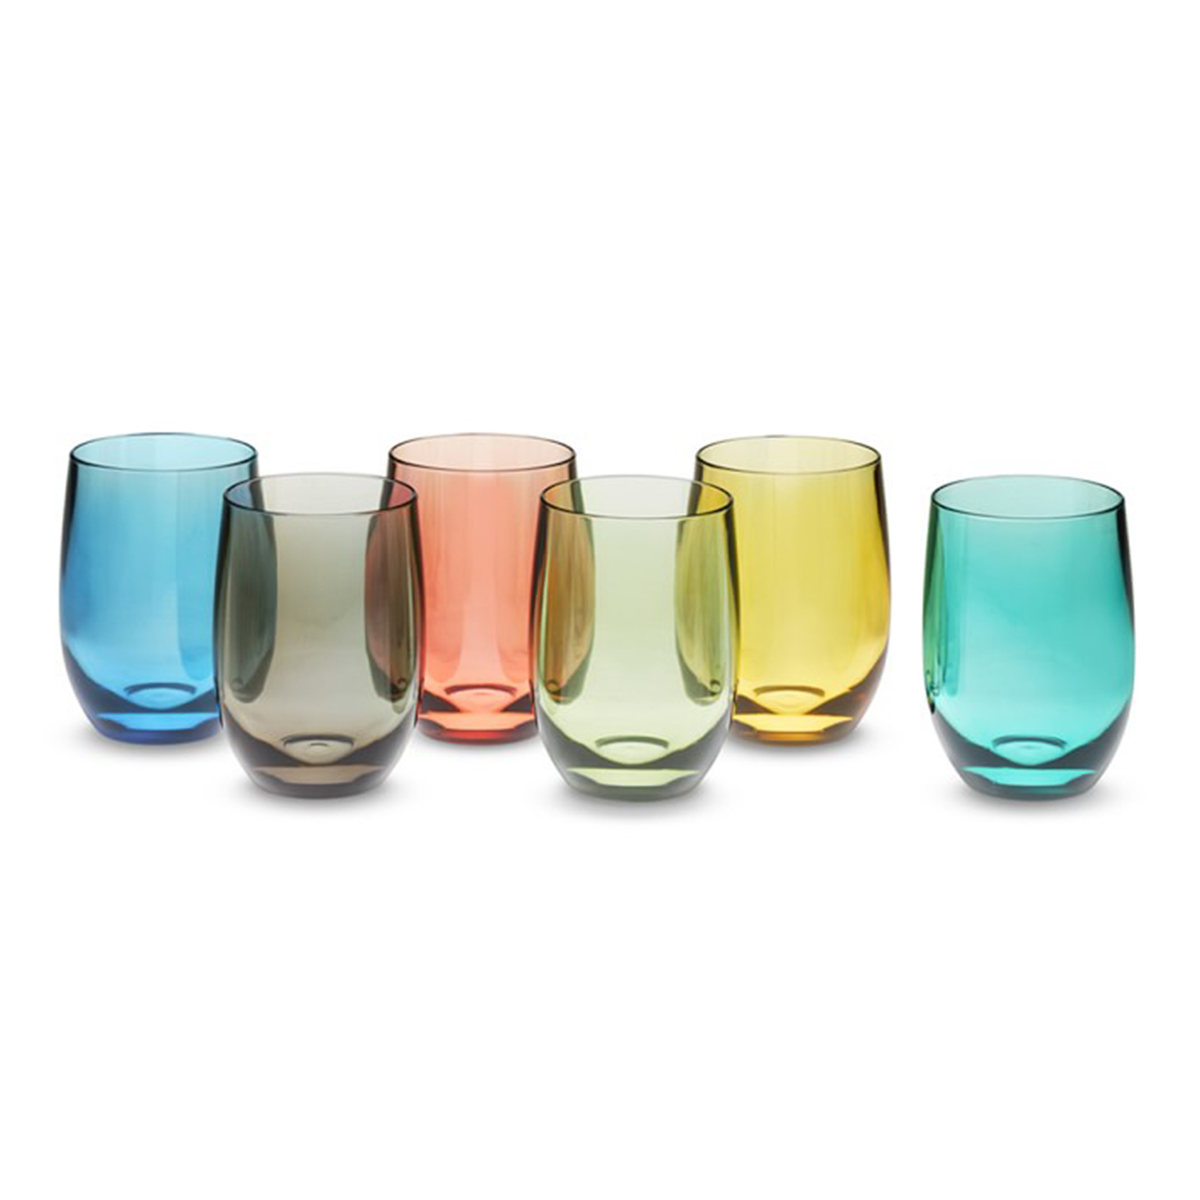 Set of colorful wine glasses in blue, red, yellow, green, and black photo